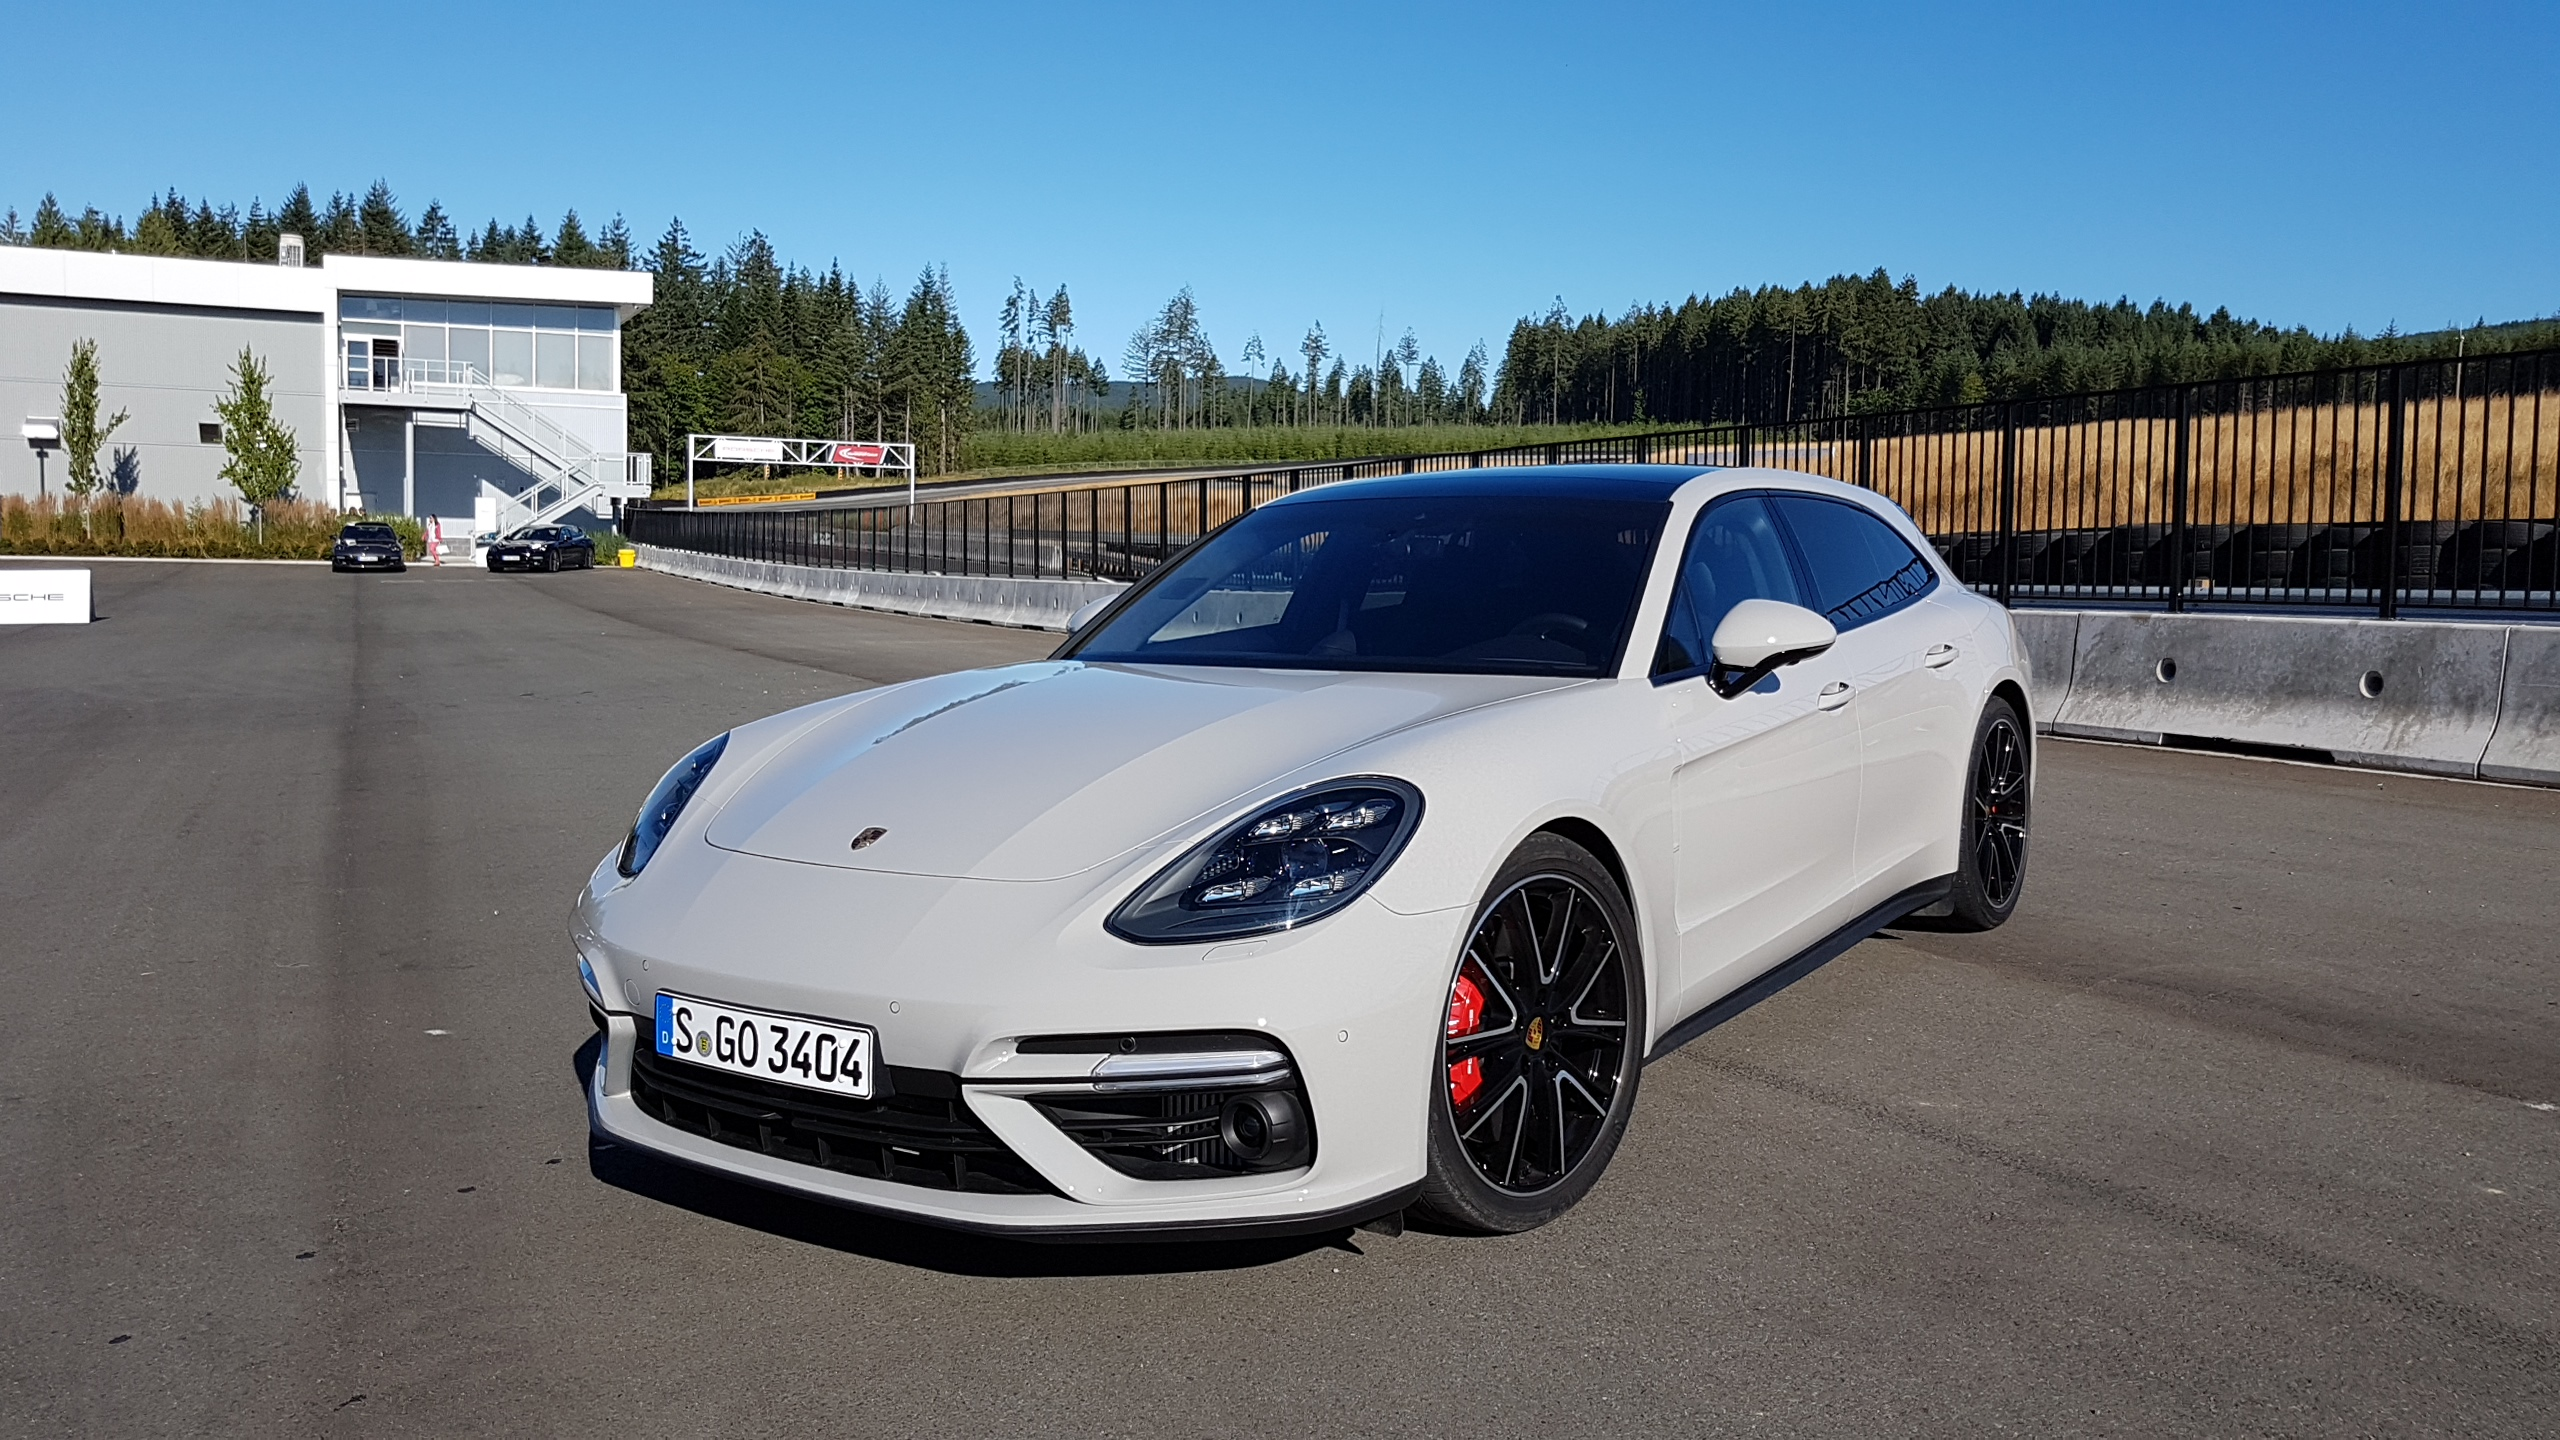 premier essai porsche panamera sport turismo 2018 auto au feminin. Black Bedroom Furniture Sets. Home Design Ideas